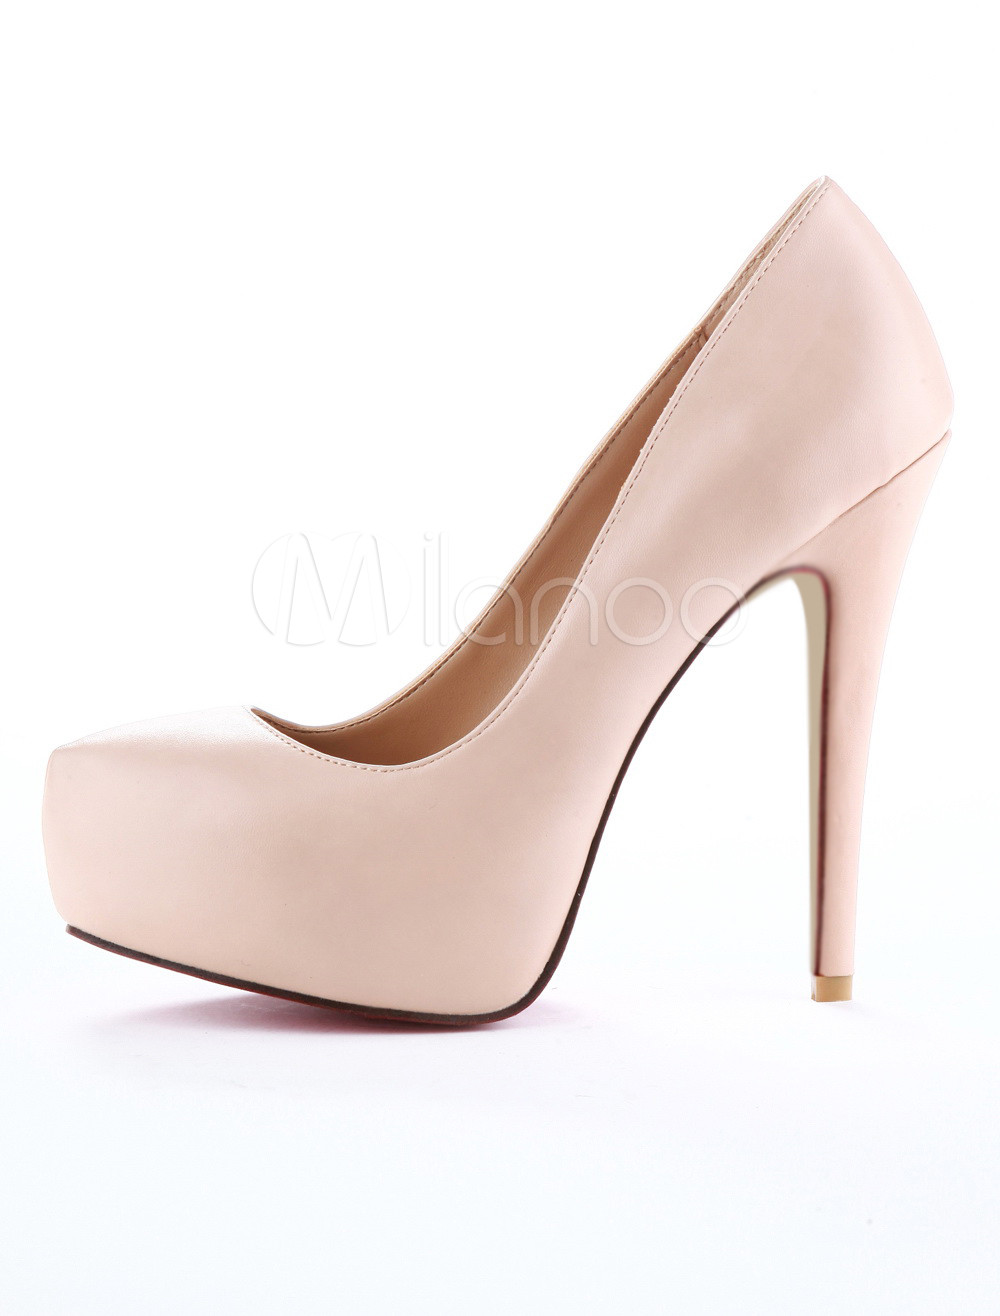 Platform Sexy High Heels Women&39s Almond Toe Nude Pumps 5.5 INCH